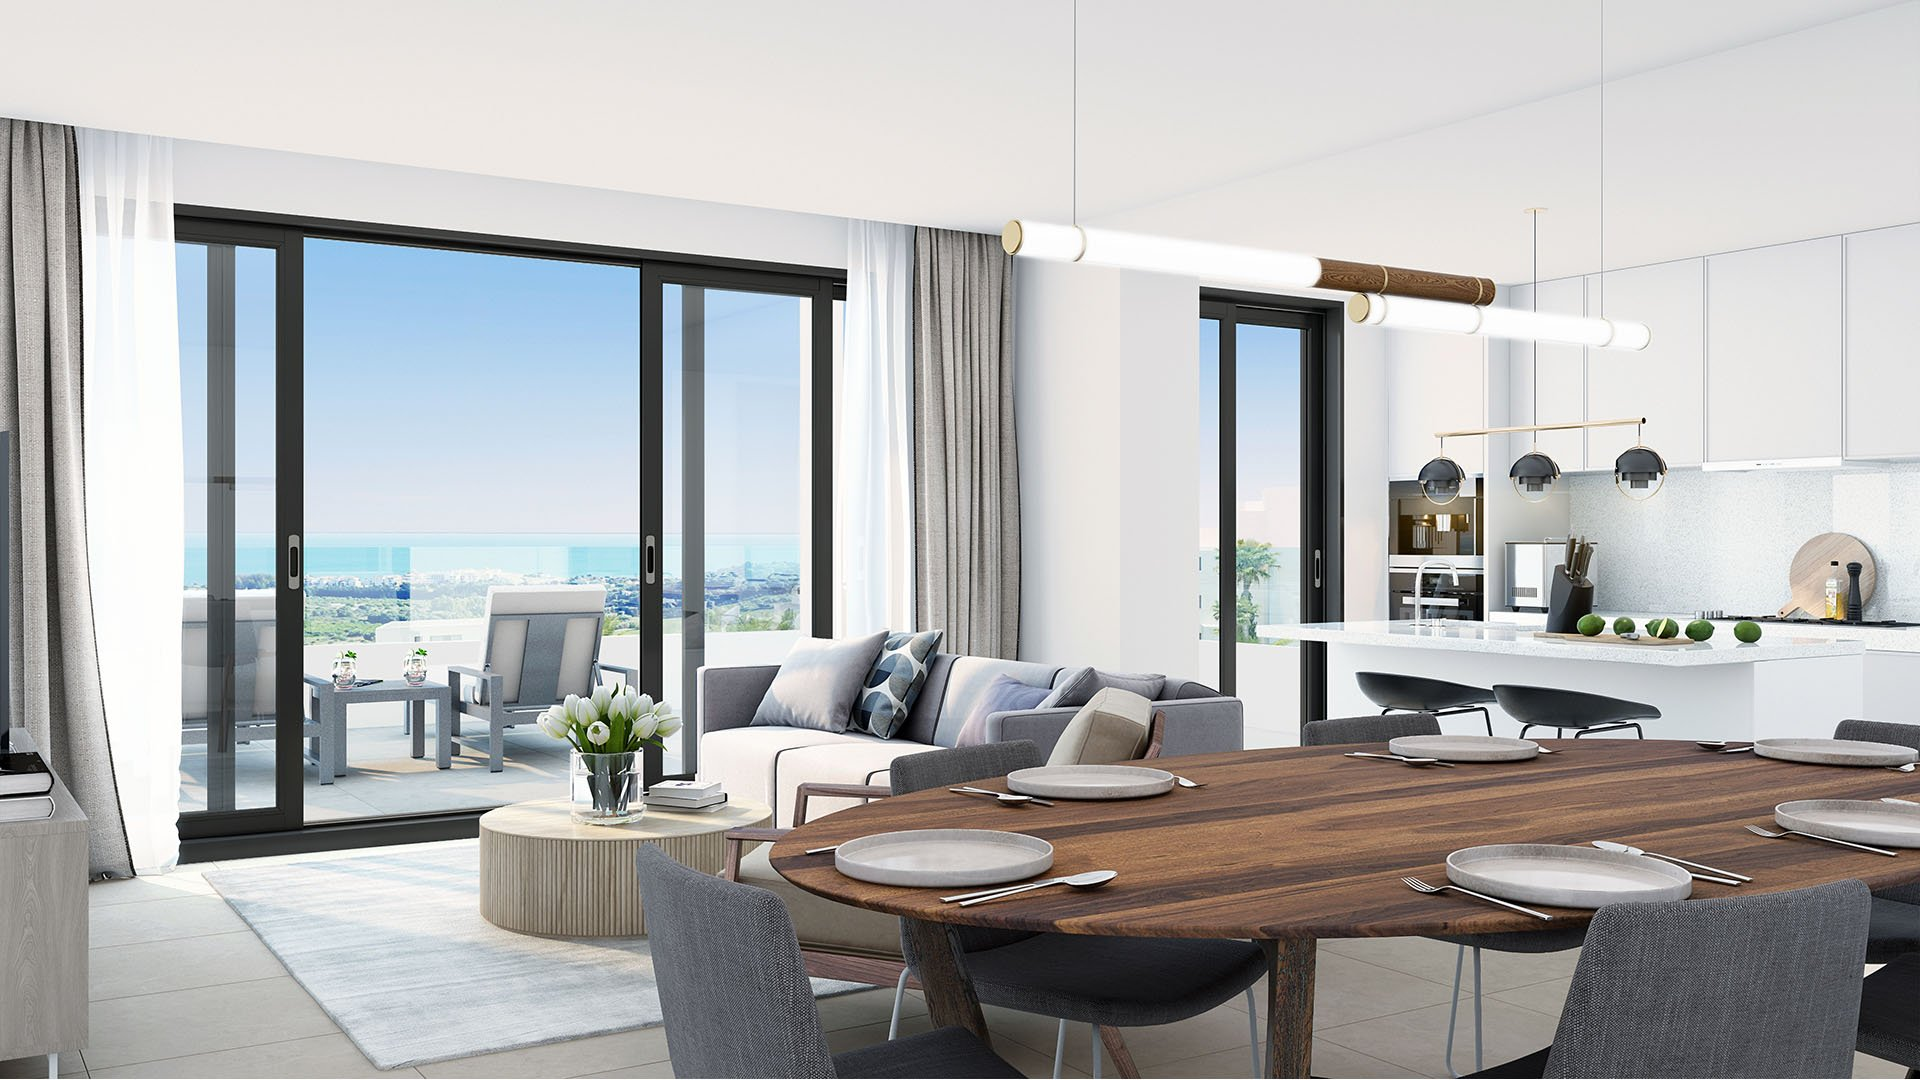 Mesas Homes: Apartments with phenomenal views near Estepona